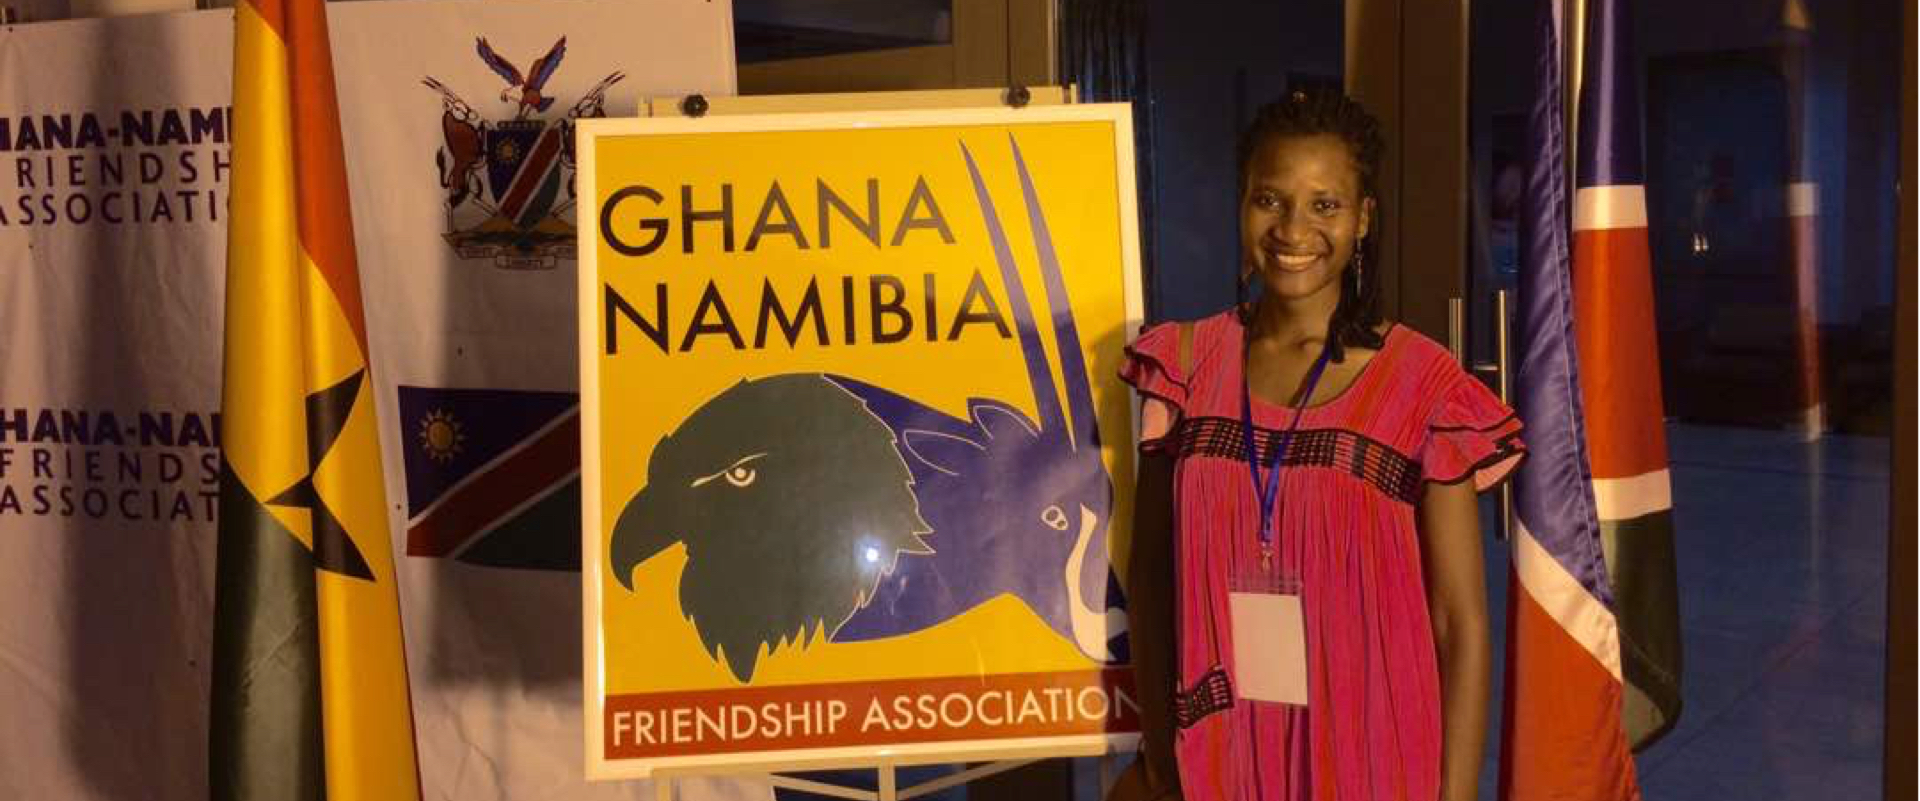 Marly Samuel 8th Batch AU-YV promoting the Namibian Culture in Accra Ghana